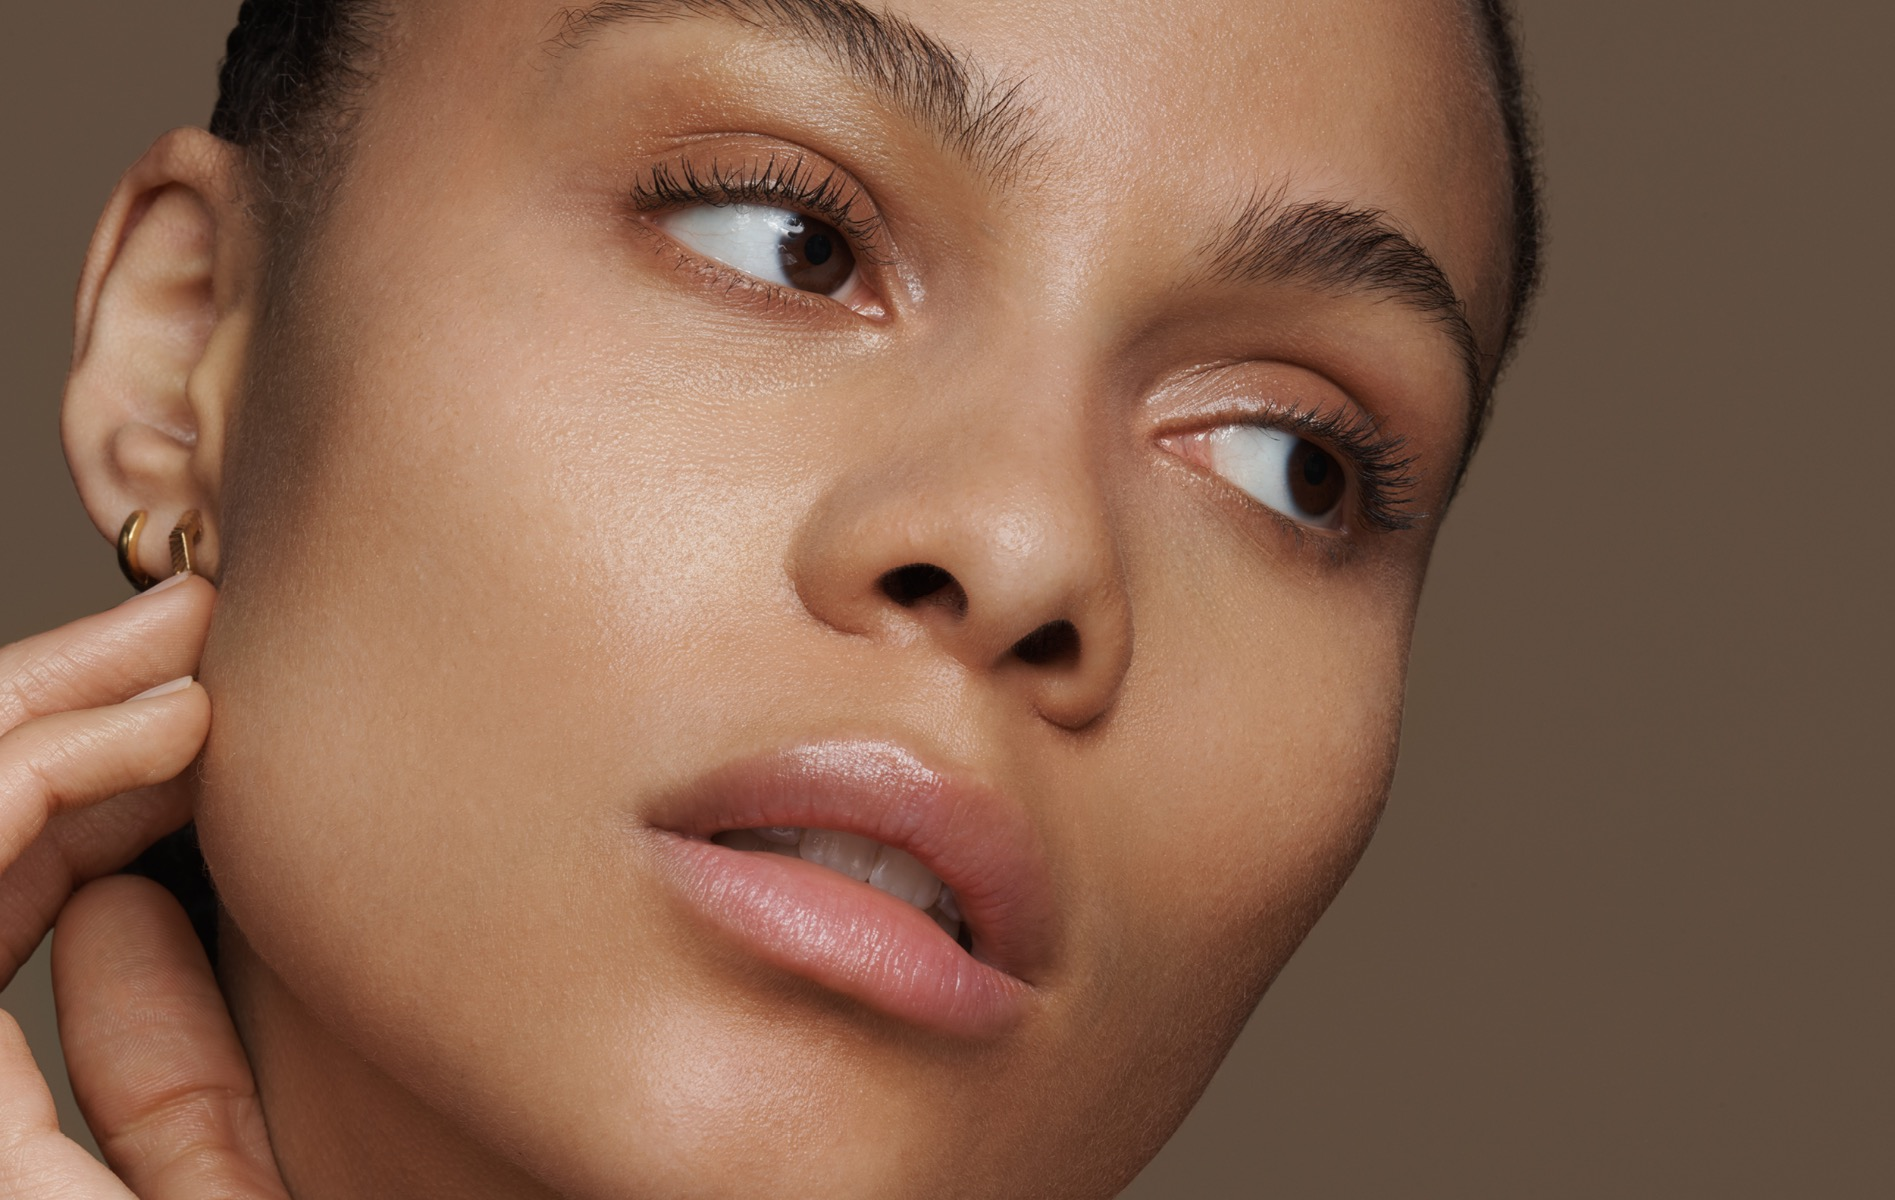 The Best Skin Products For Acne Prone Skin